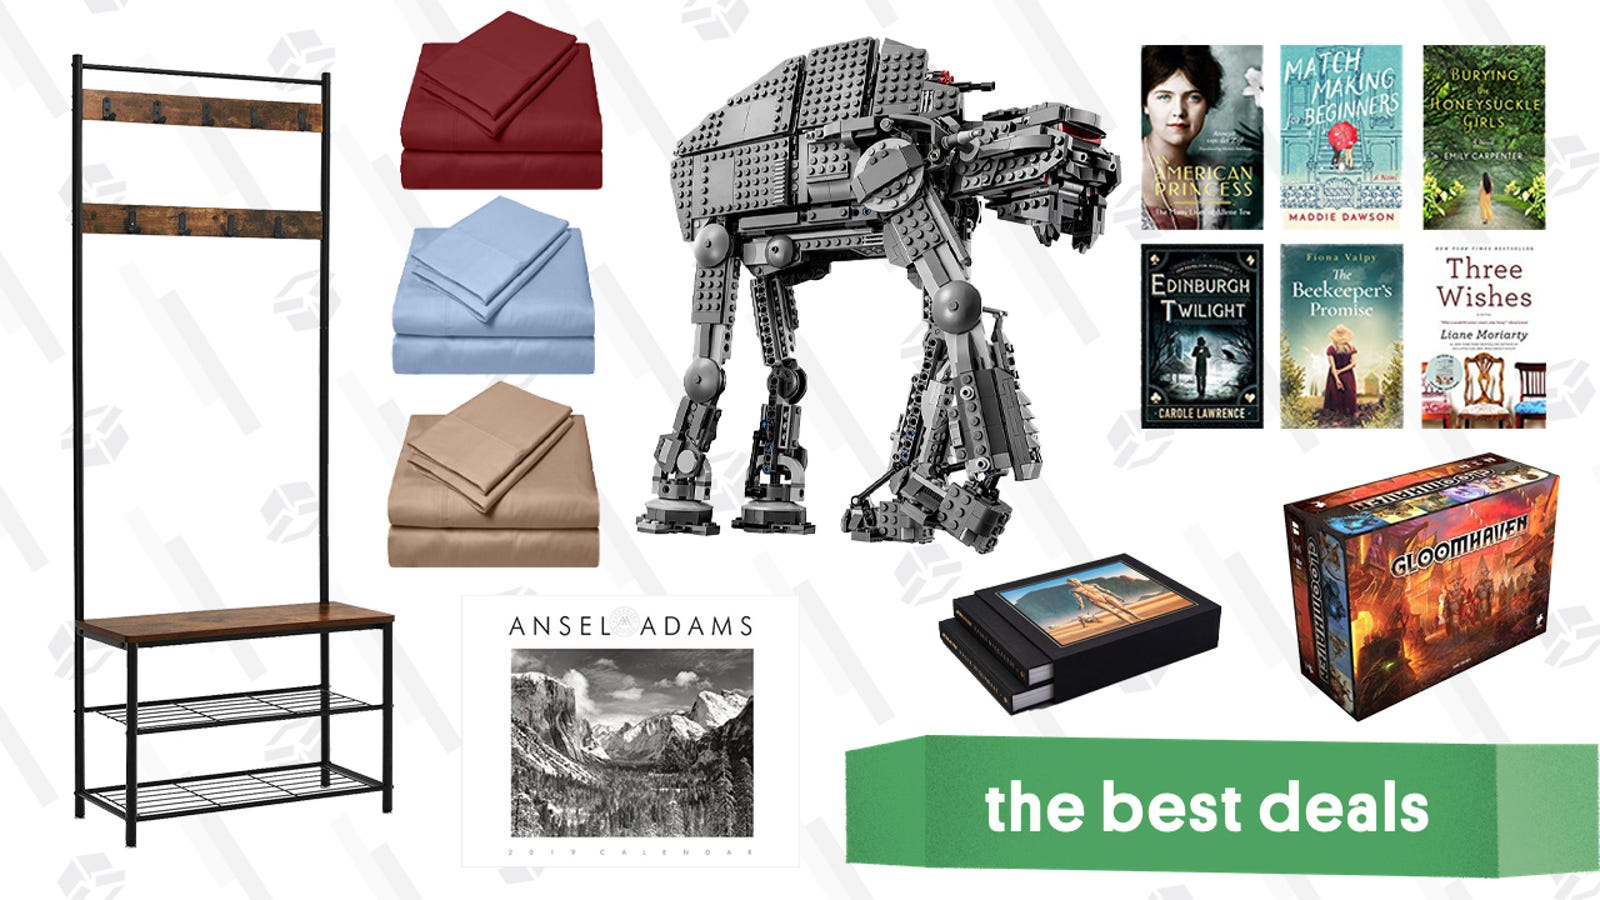 QnA VBage Sunday's Best Deals: LEGO Star Wars Sets, Gloomhaven, Kindle eBooks, Furniture, and More